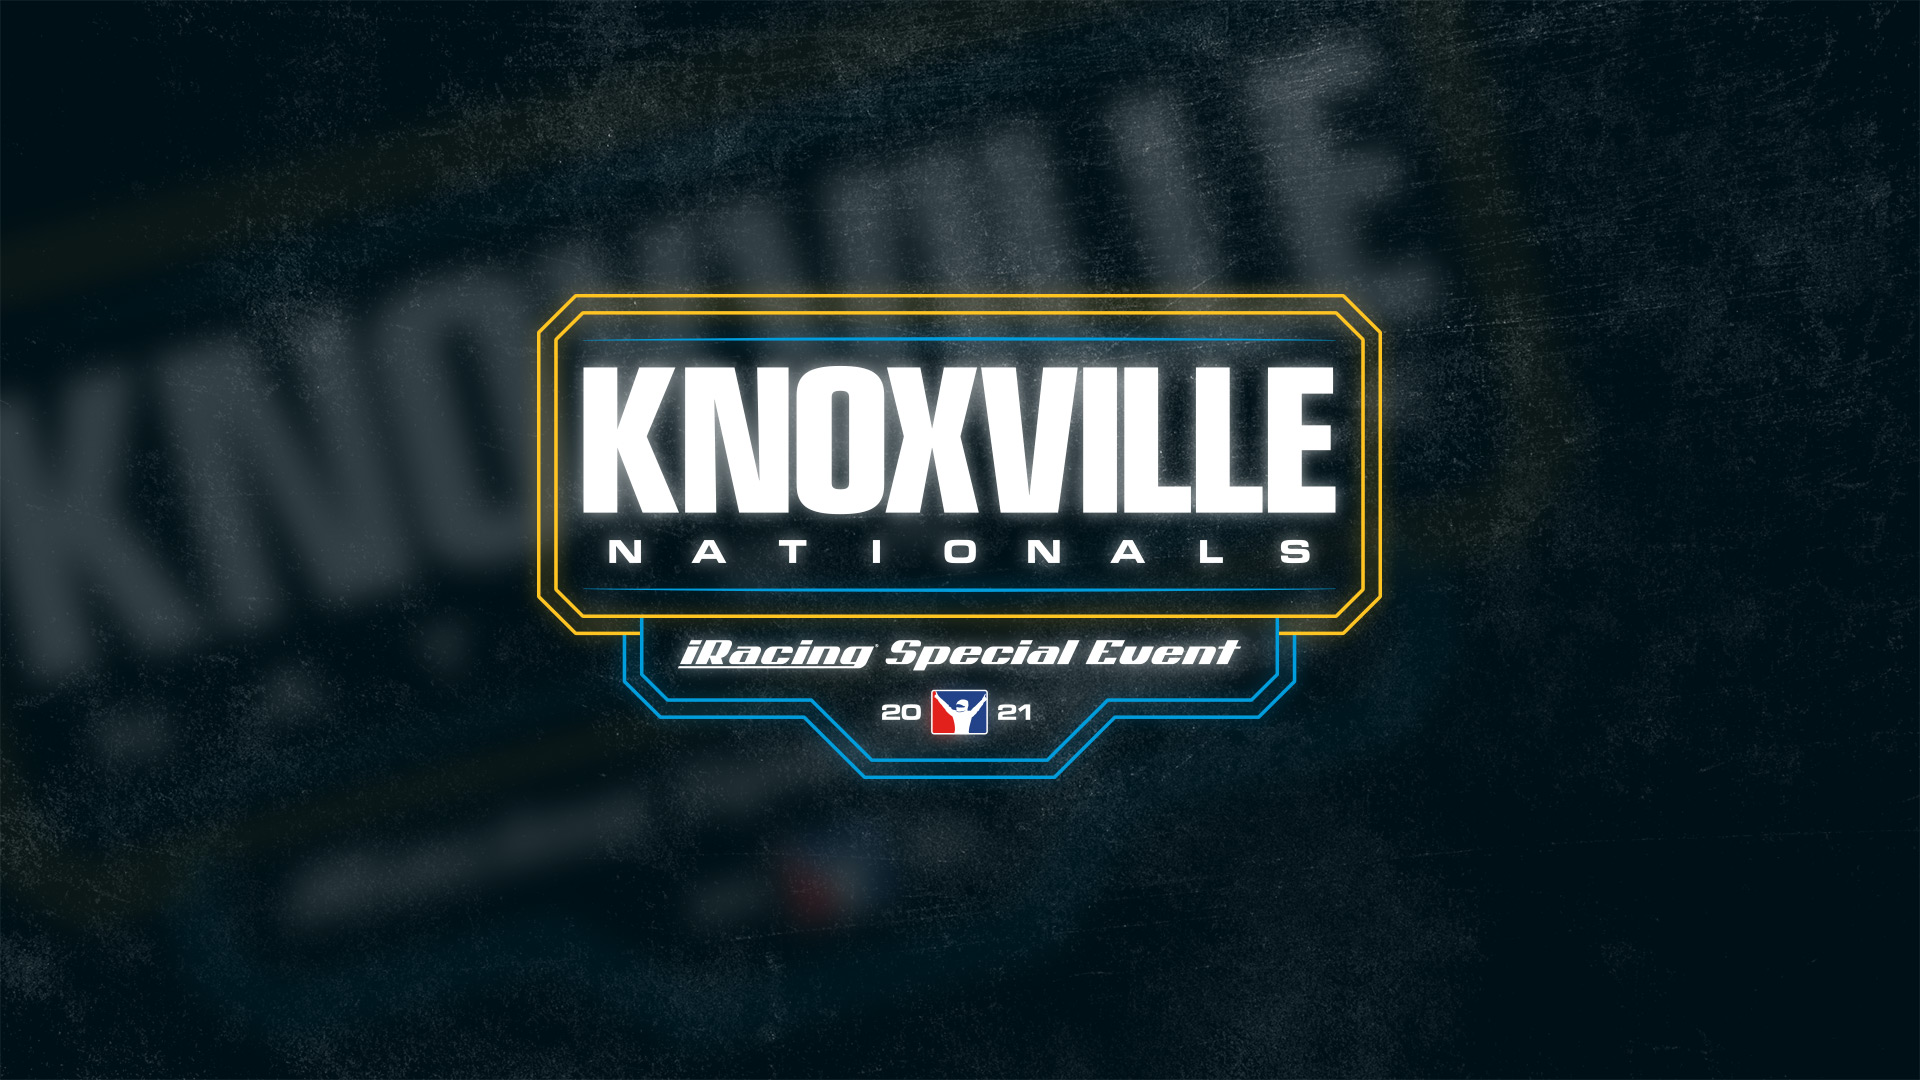 iRSE-Knoxville-Nationals-feature.jpg